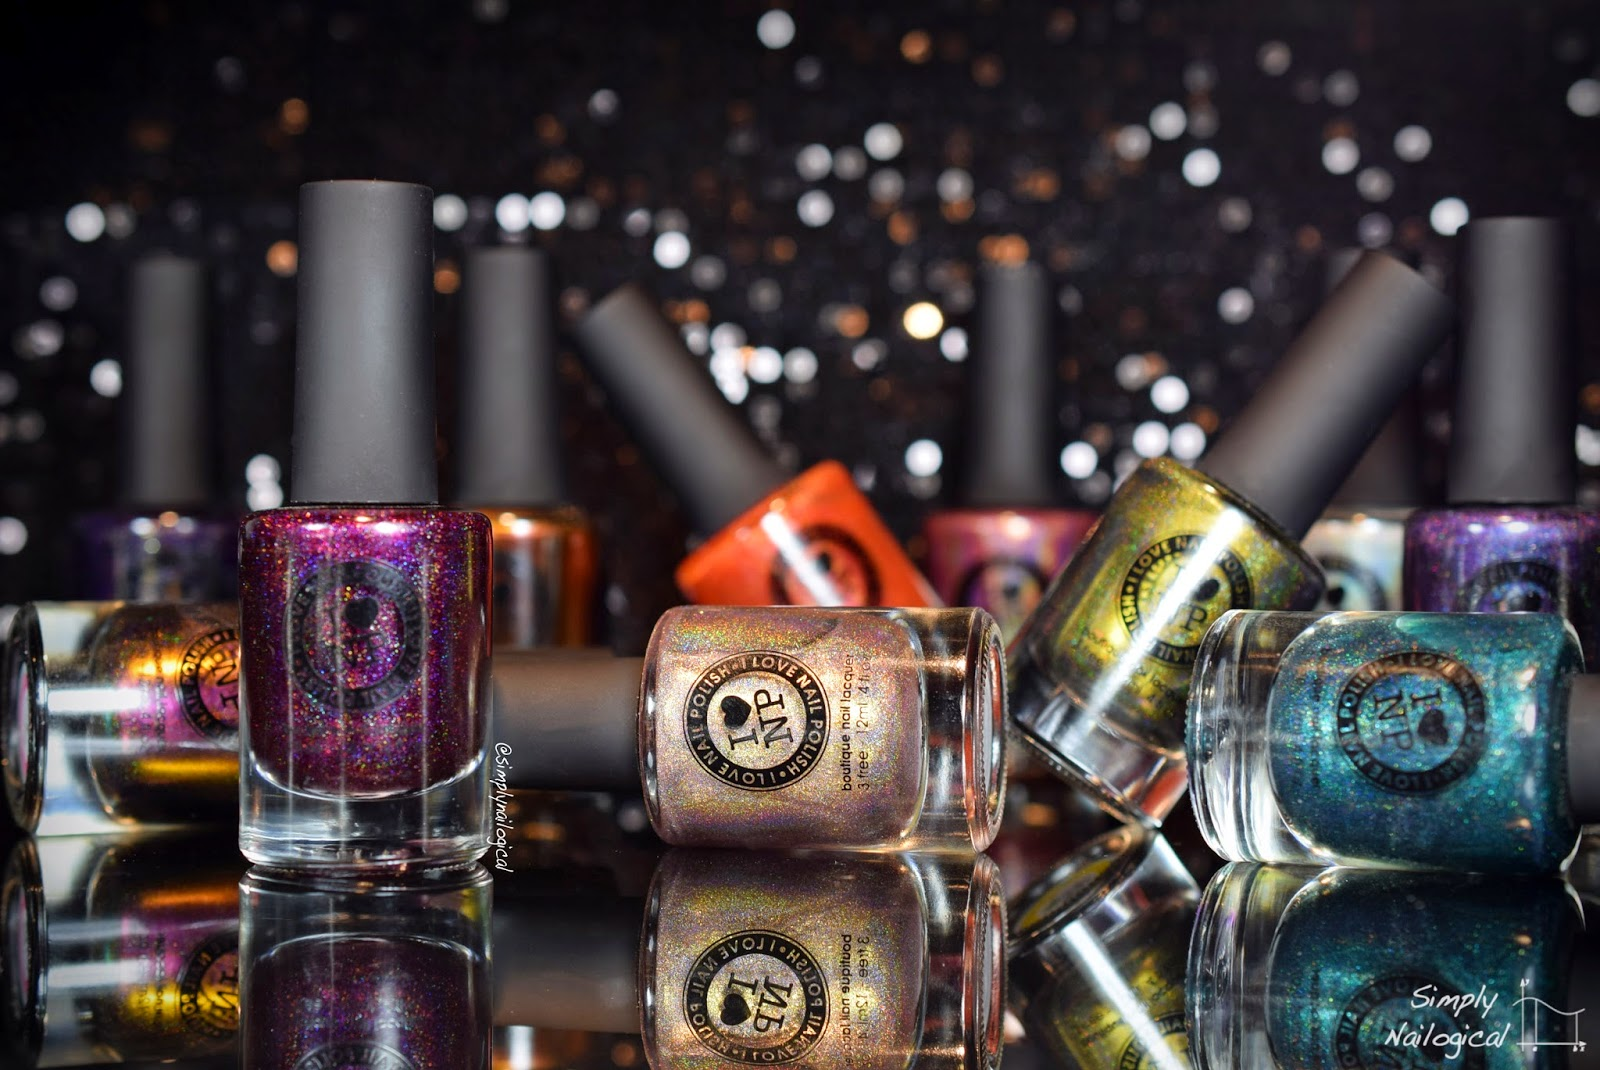 ILNP Fall 2014 collection